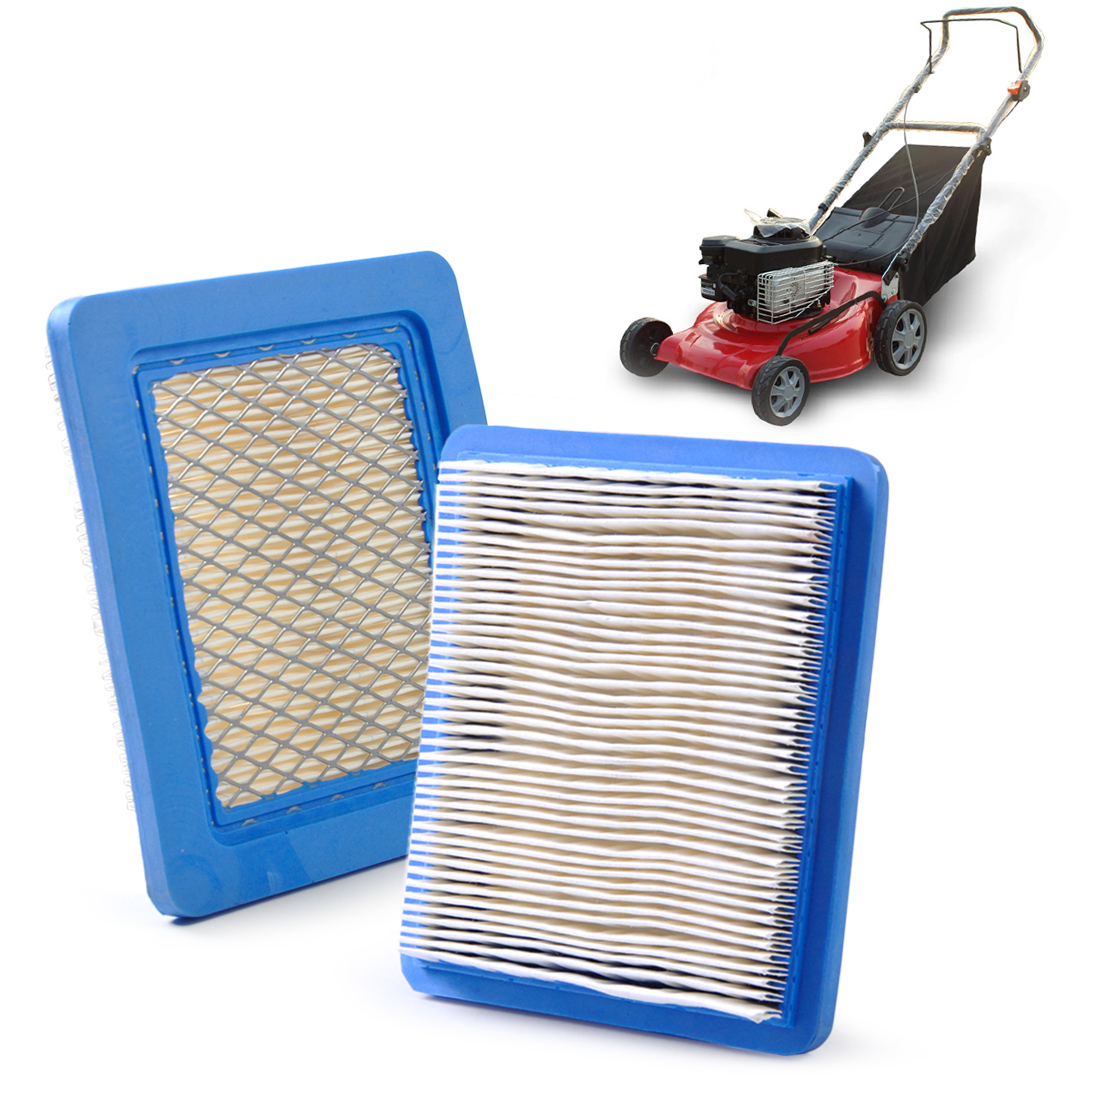 LETAOSK High Quality Air Filter Replacement For Briggs & Stratton 5043 5043D 399959 119-1909 491588 491588s